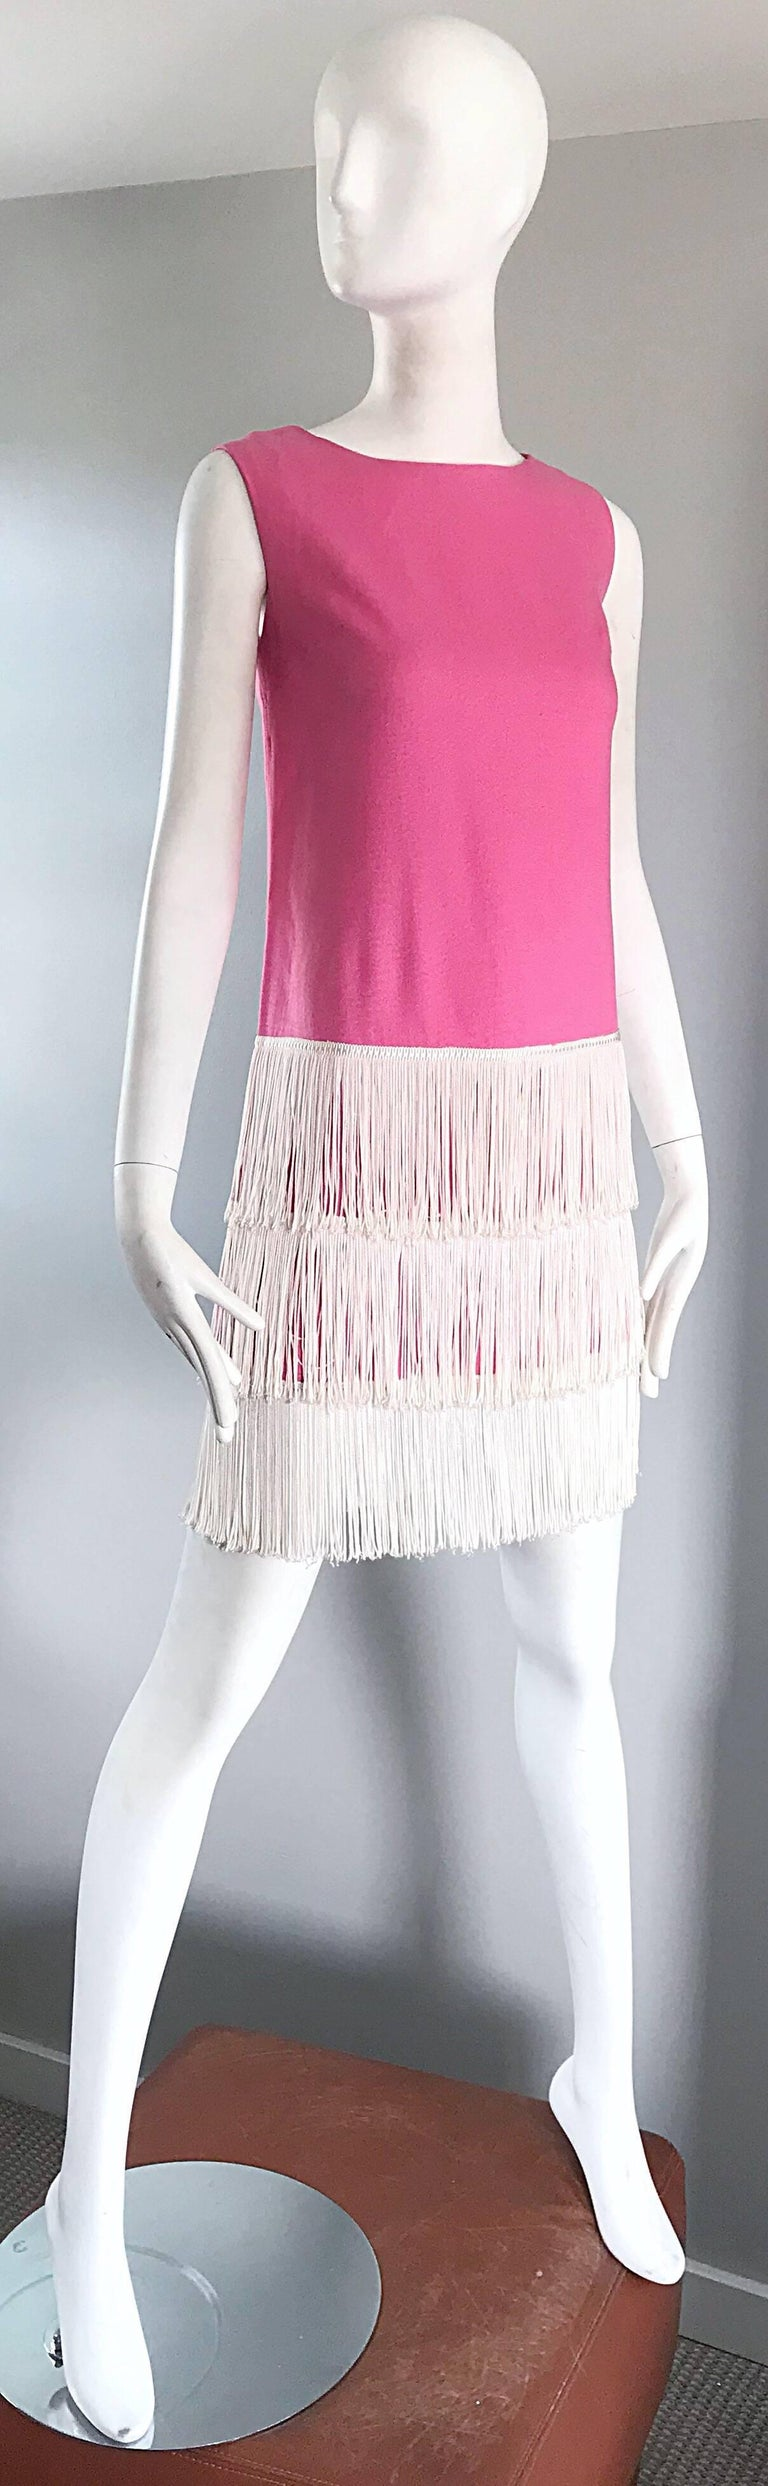 1960s does 1920s Bubblegum Pink + White Fringe Vintage 60s Flapper Shift Dress In Excellent Condition For Sale In Chicago, IL